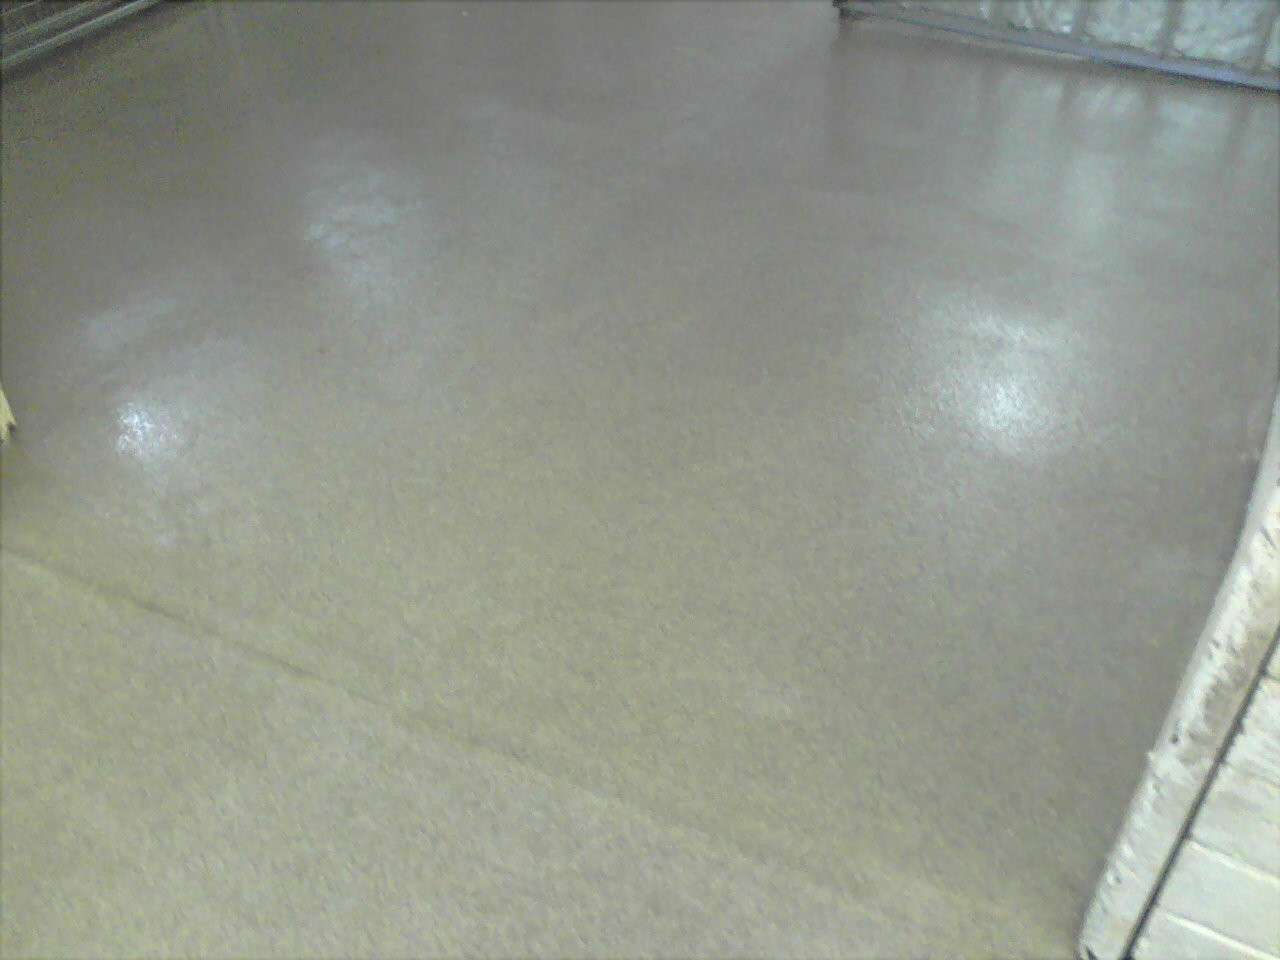 Floor after washing with SealGreen Kennel Cleaner